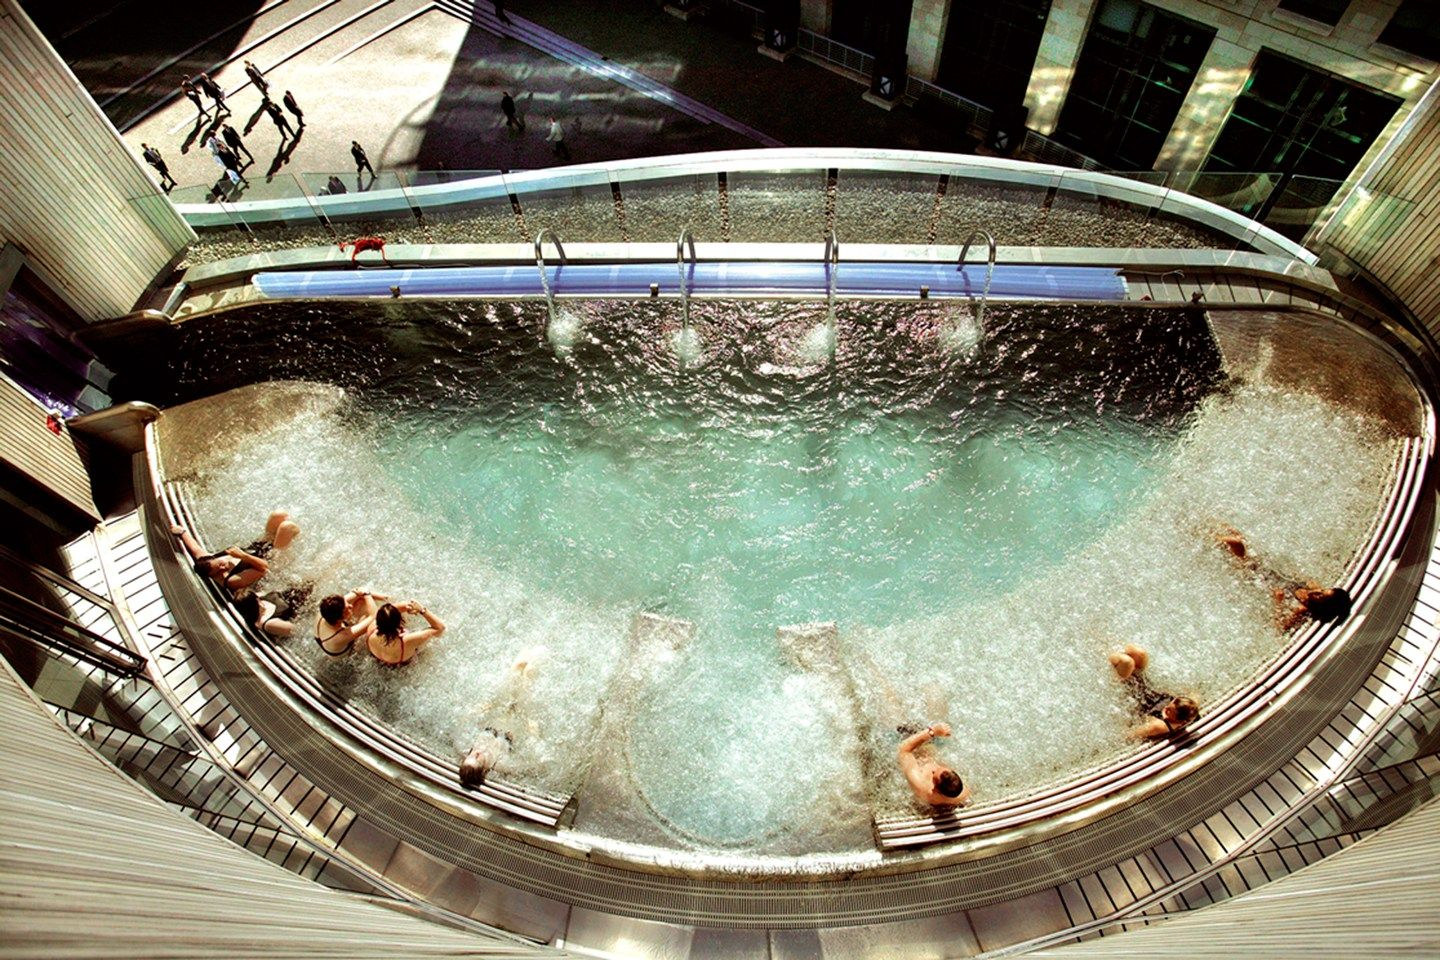 Swimming Pool Jacuzzi Edinburgh 117 Of The Most Stunning Swimming Pools In The World